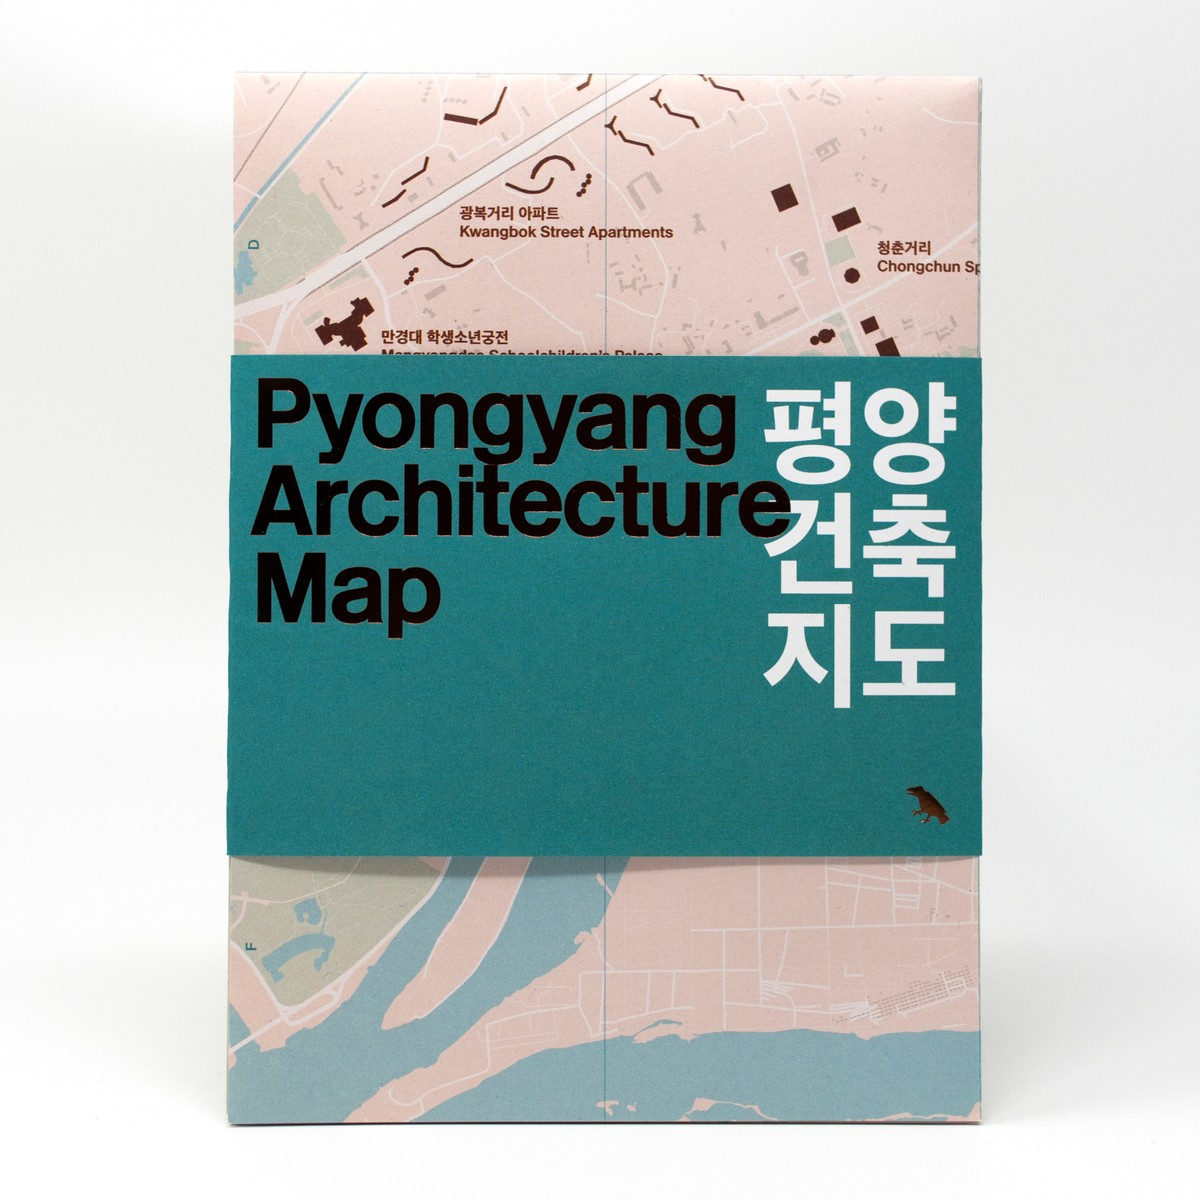 Photo of Pyongyang Architecture Map